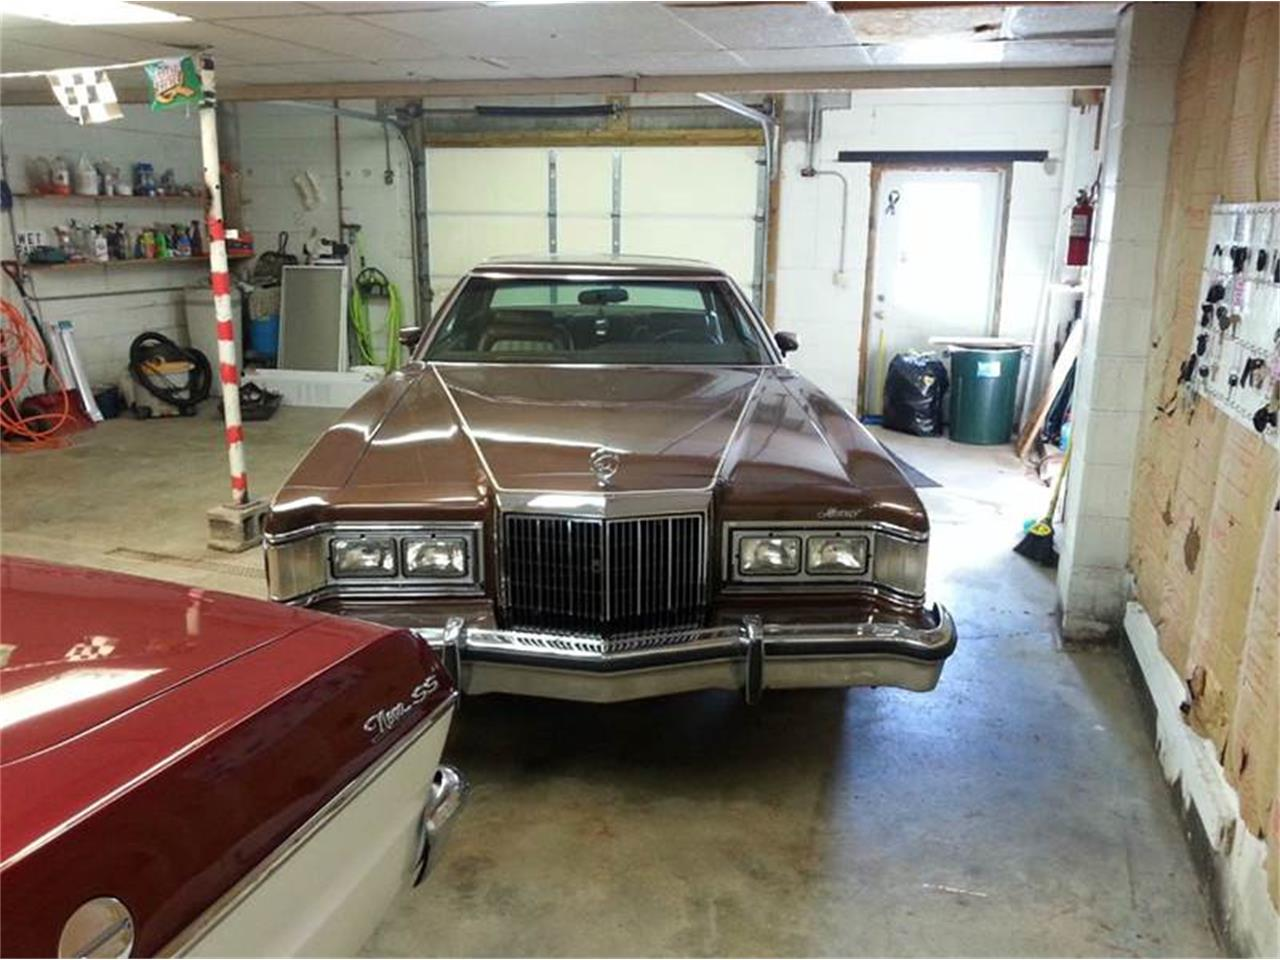 Large Picture of 1977 Mercury Cougar located in Ohio - $6,000.00 Offered by Whitmore Motors - N53N